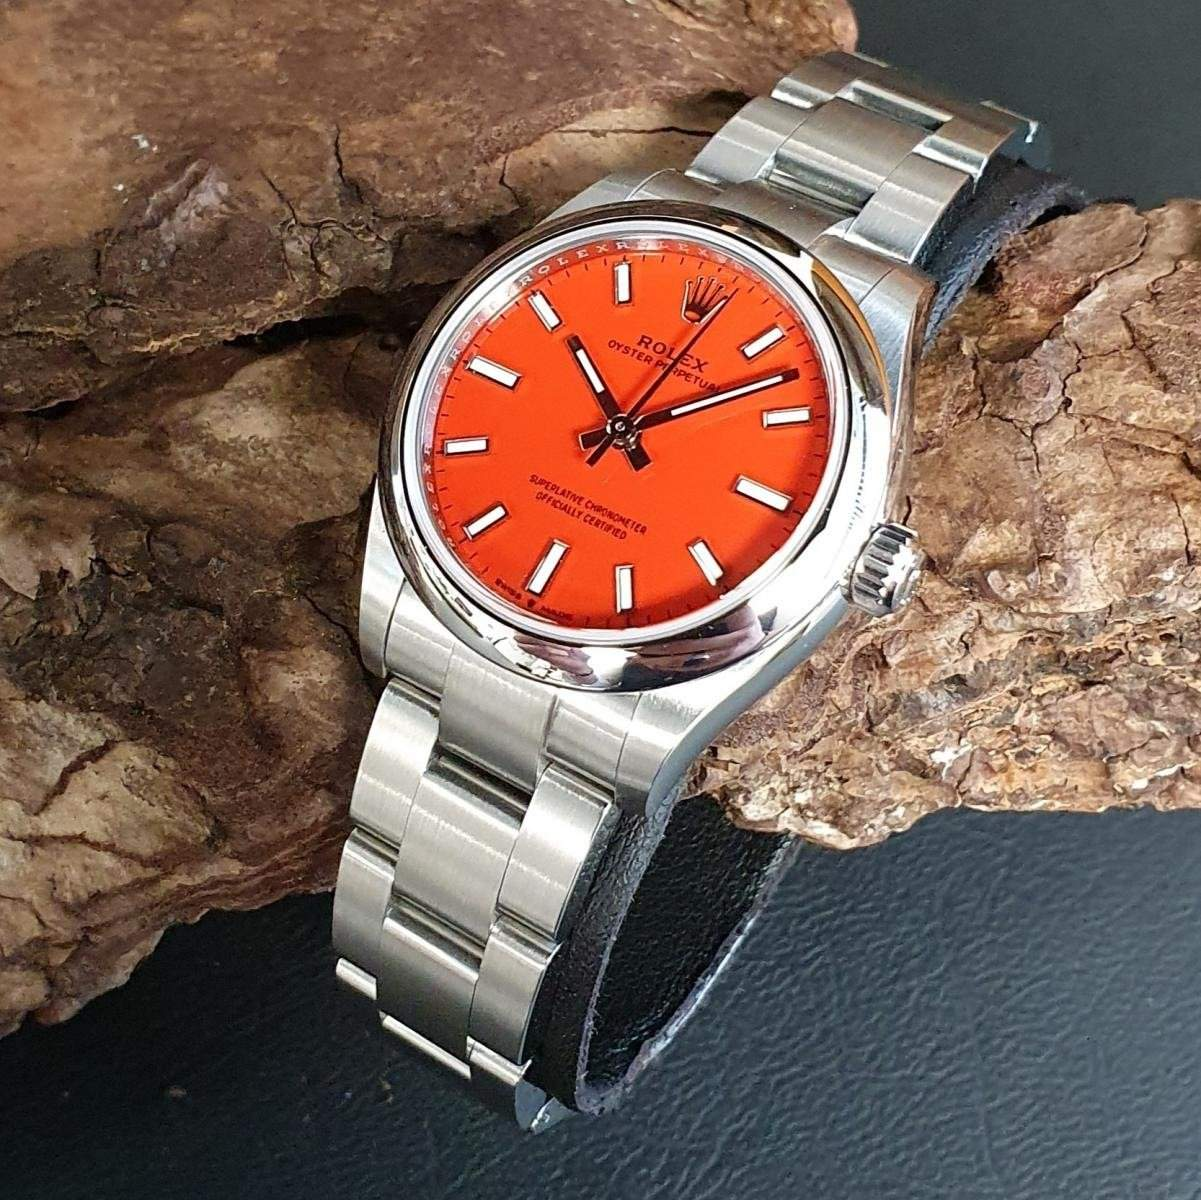 Rolex Oyster Perpetual in coral red